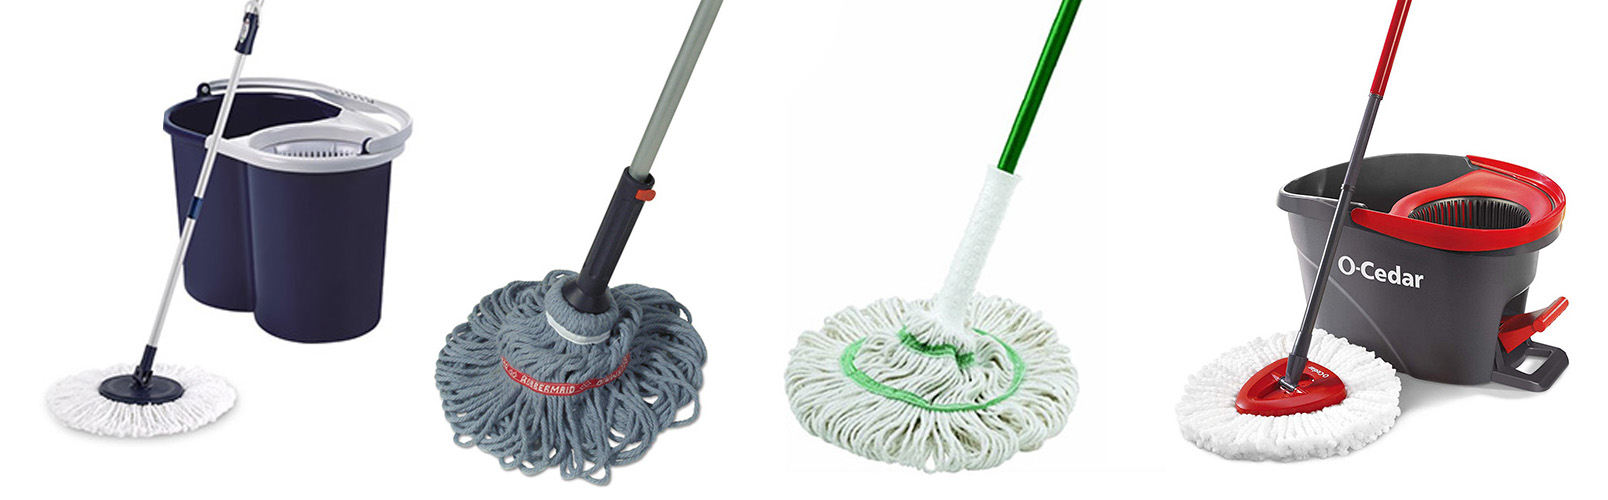 The Top Ten Spring Cleaning Helpers From Amazon - Twist and Shout Mop | Ratchet Twist Mop | Tornado Mop | Easy Wring Spin Mop